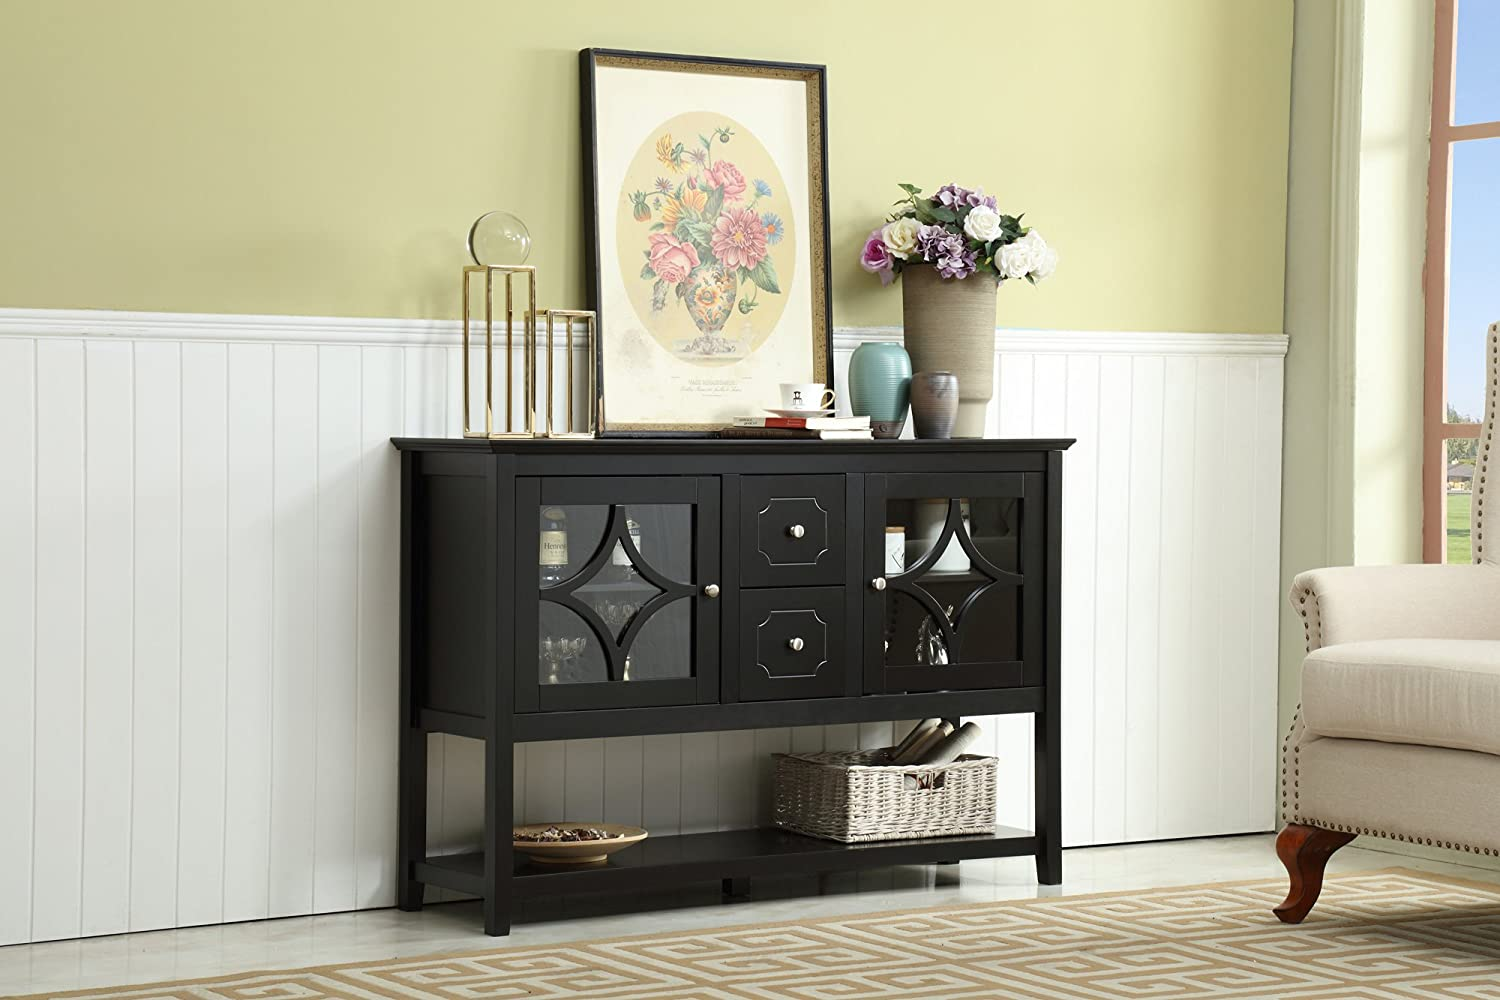 Mixcept 52 Sideboard Buffet Cabinet Wood Console Table Storage Cabinet with 2 Doors and Drawers, Black